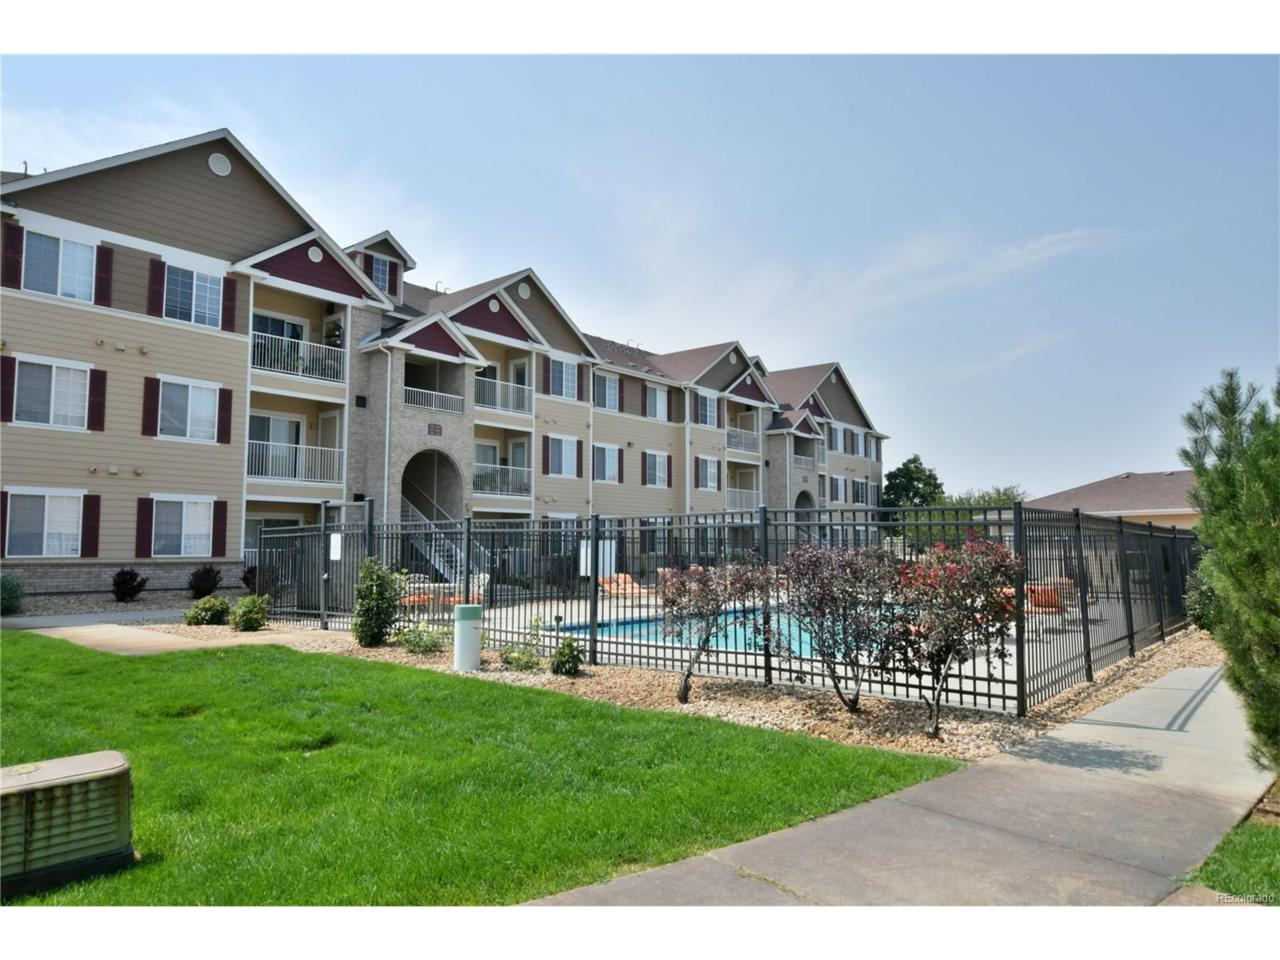 15700 E Jamison Drive #7208, Englewood, CO 80112 (MLS #4383235) :: 8z Real Estate